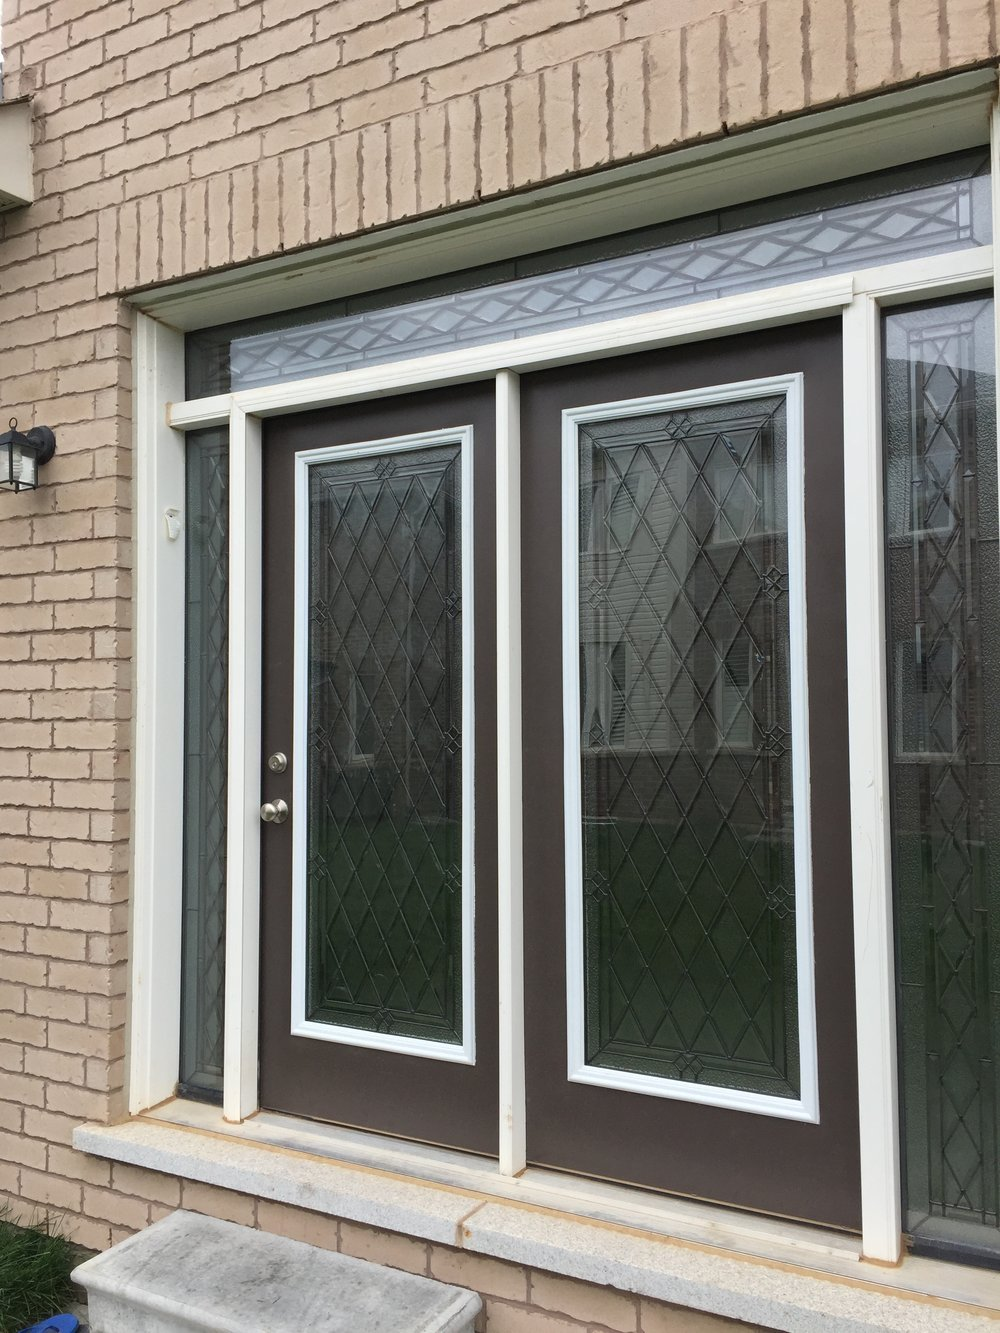 Cookstown-decorative-glass-door-insert-East-Gwillimbury-on